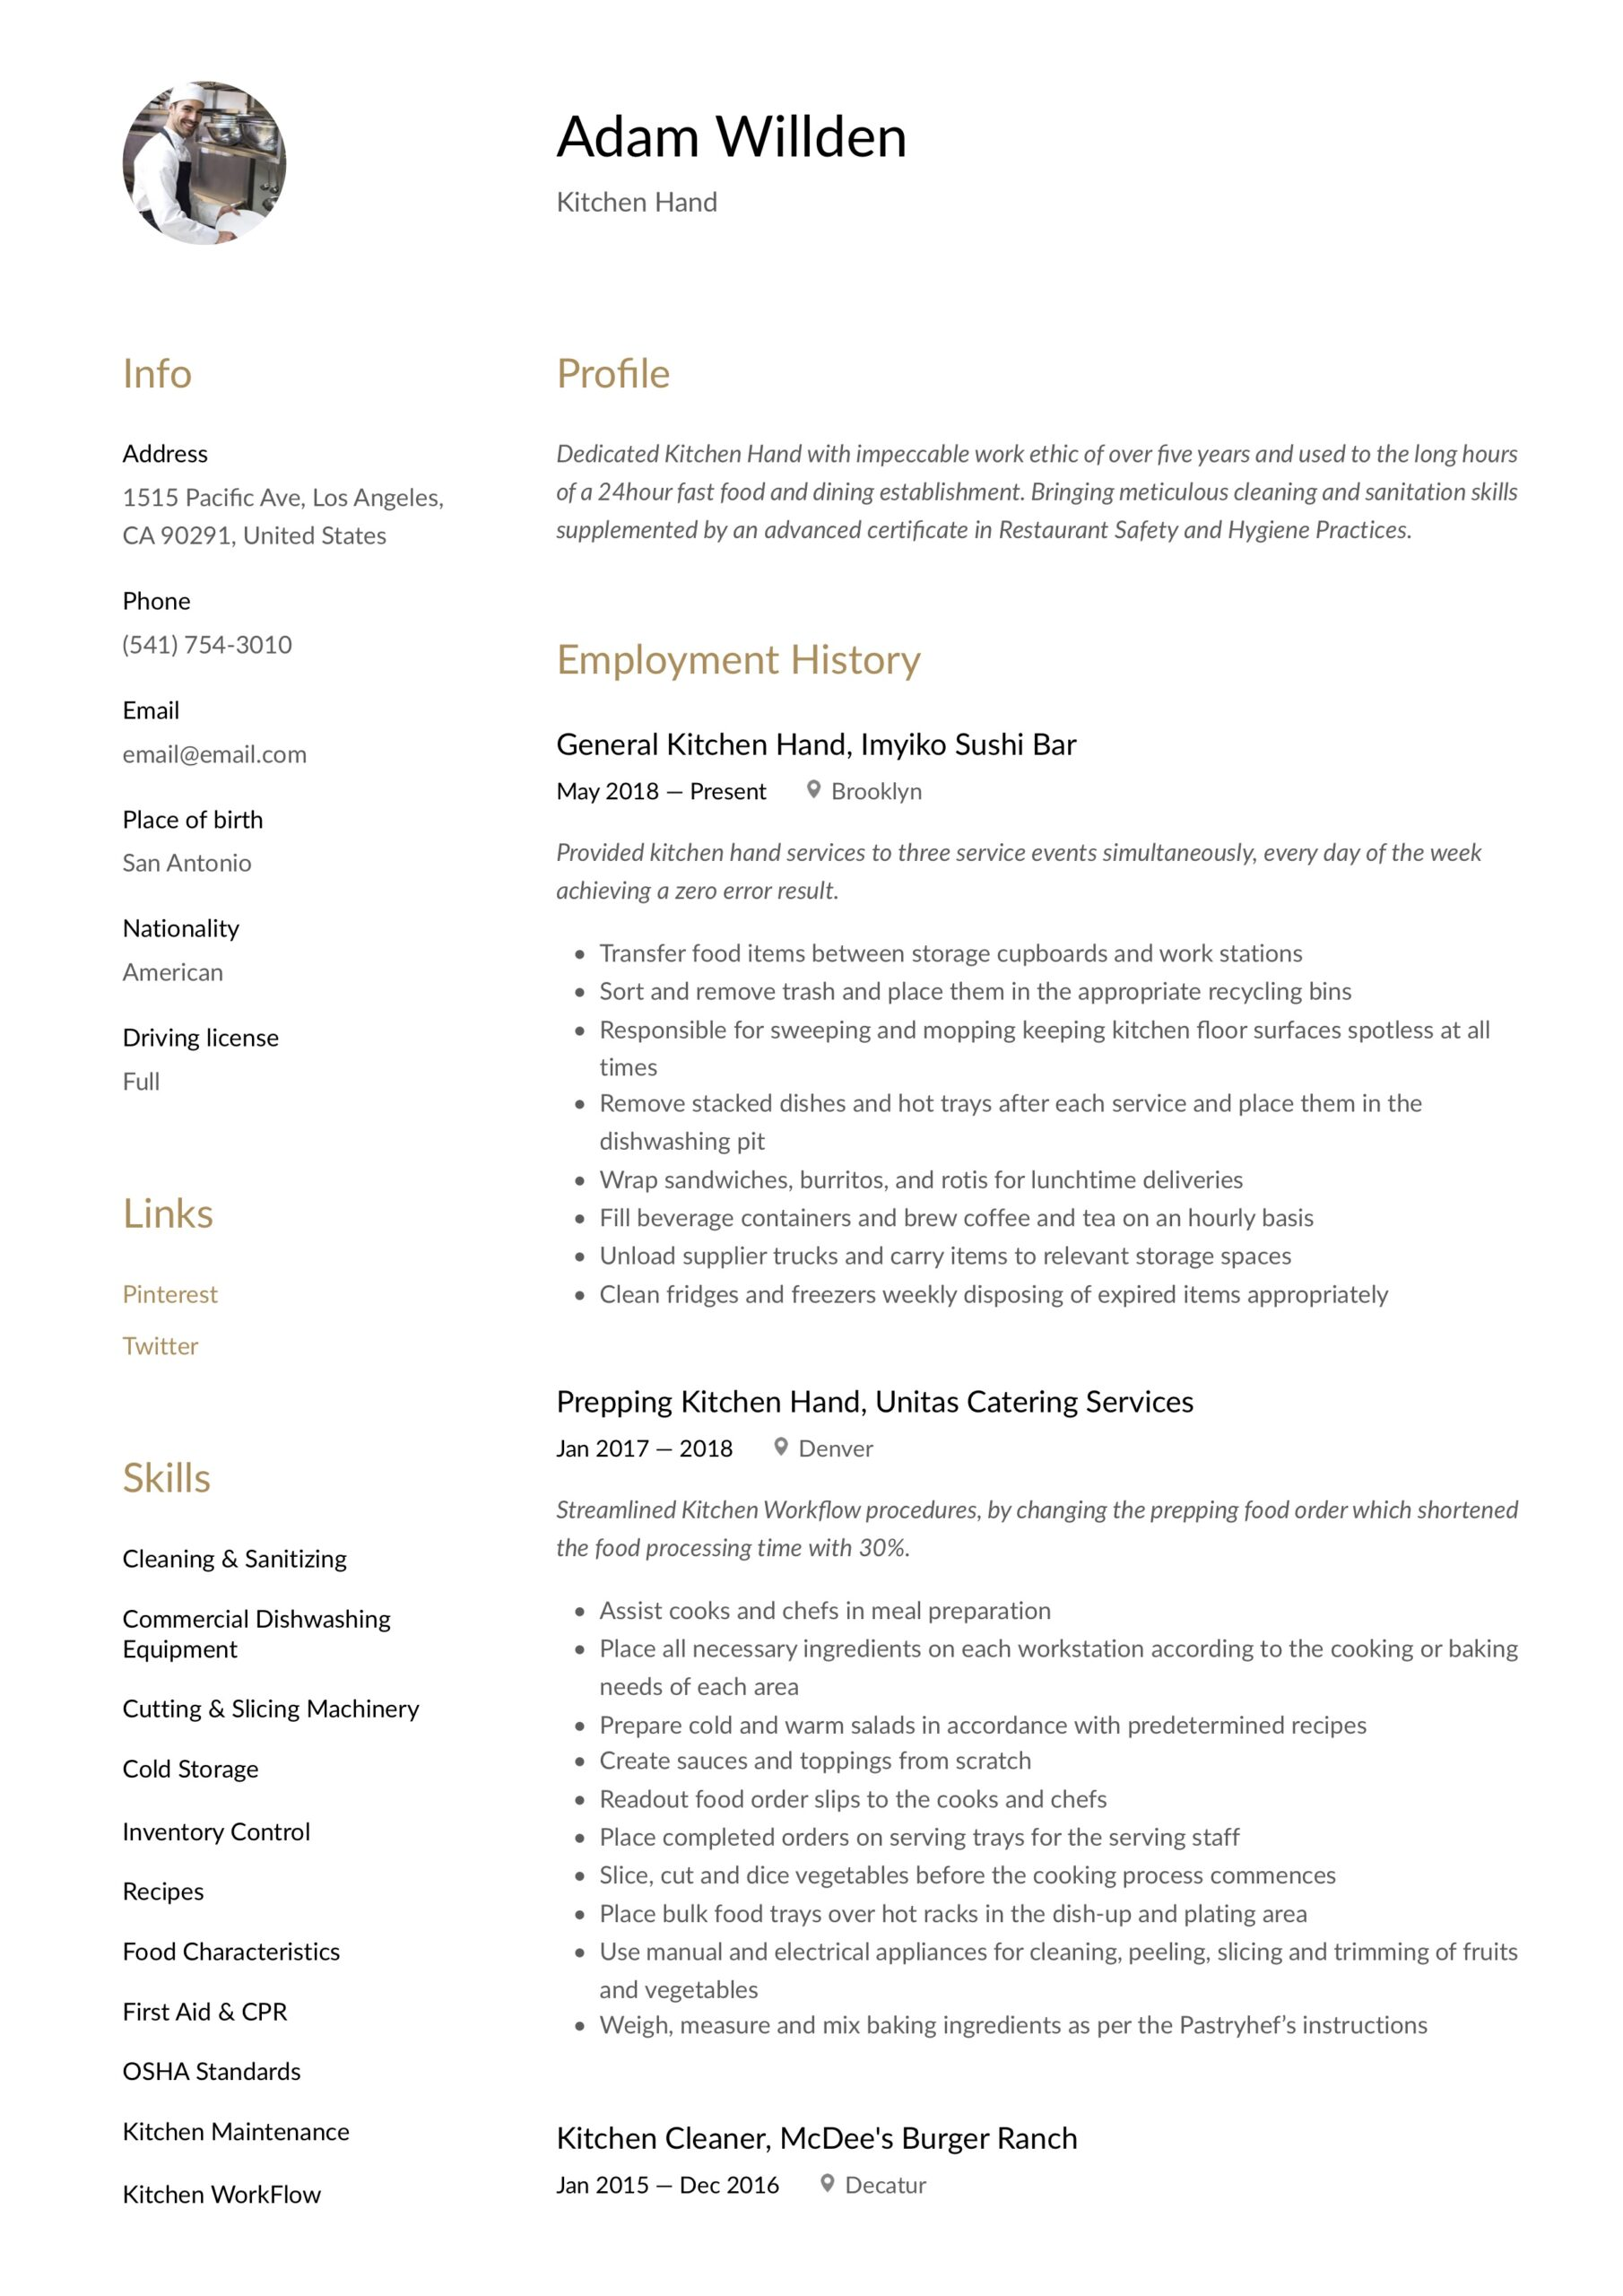 kitchen resume writing guide free templates staff job description for graduate business Resume Kitchen Staff Job Description For Resume